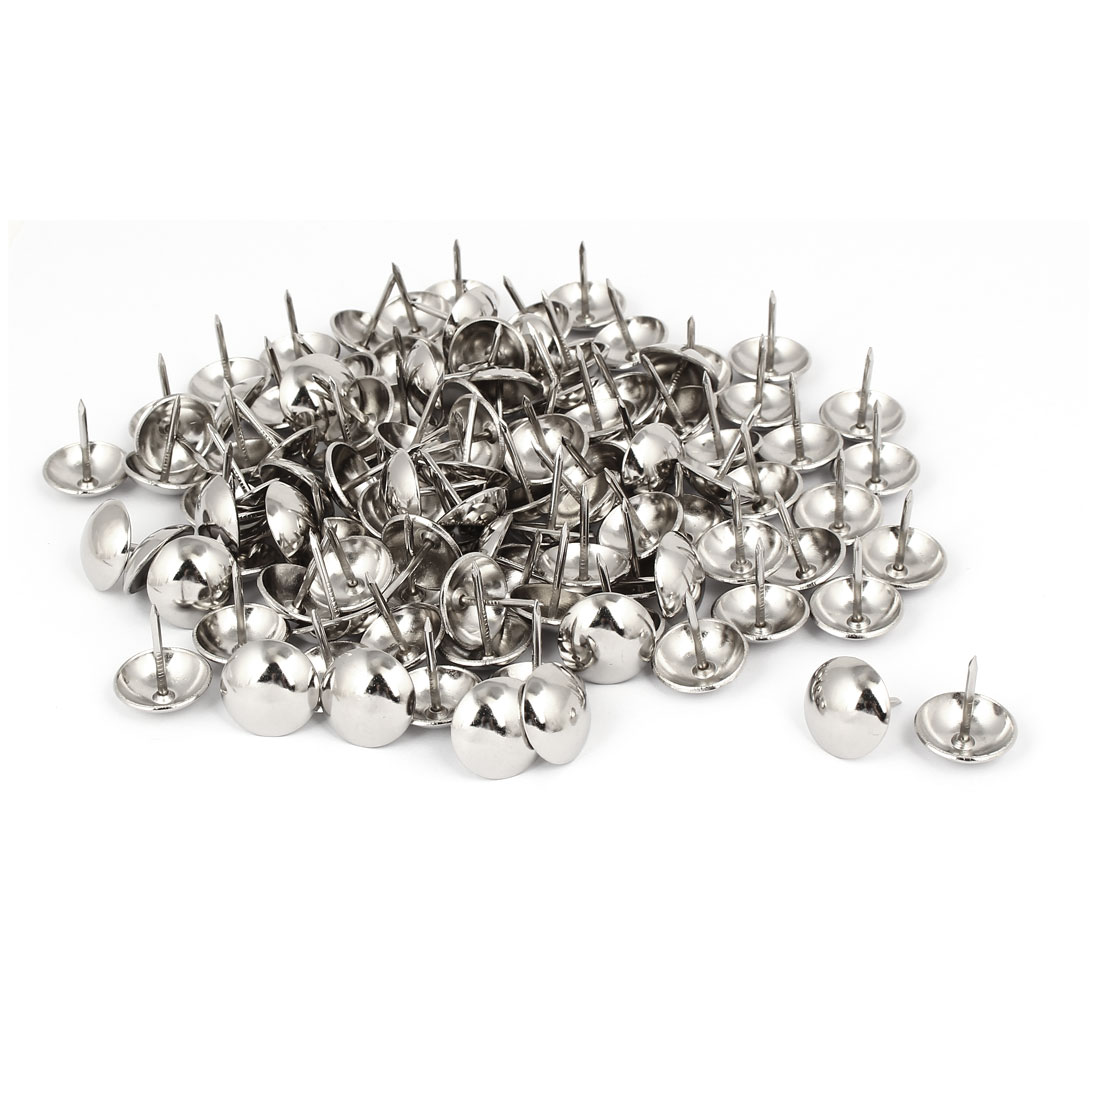 Home Metal Round Domed Head Upholstery Tack Nail Silver Tone 19mm Dia 120pcs